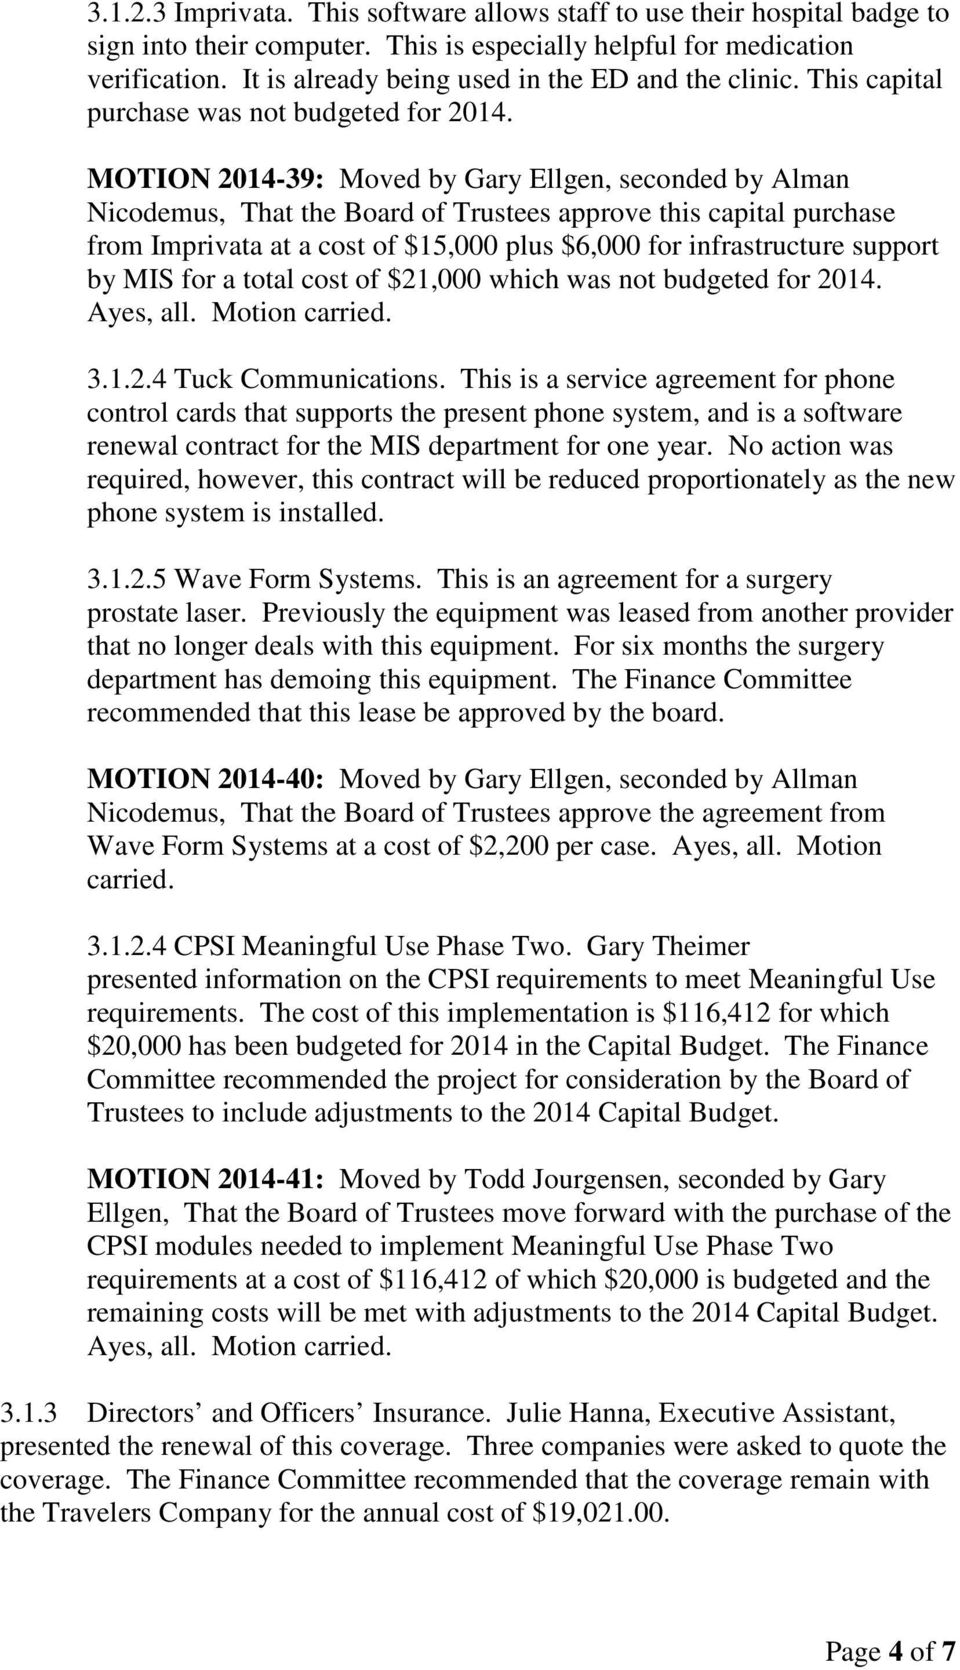 MOTION 2014-39: Moved by Gary Ellgen, seconded by Alman Nicodemus, That the Board of Trustees approve this capital purchase from Imprivata at a cost of $15,000 plus $6,000 for infrastructure support